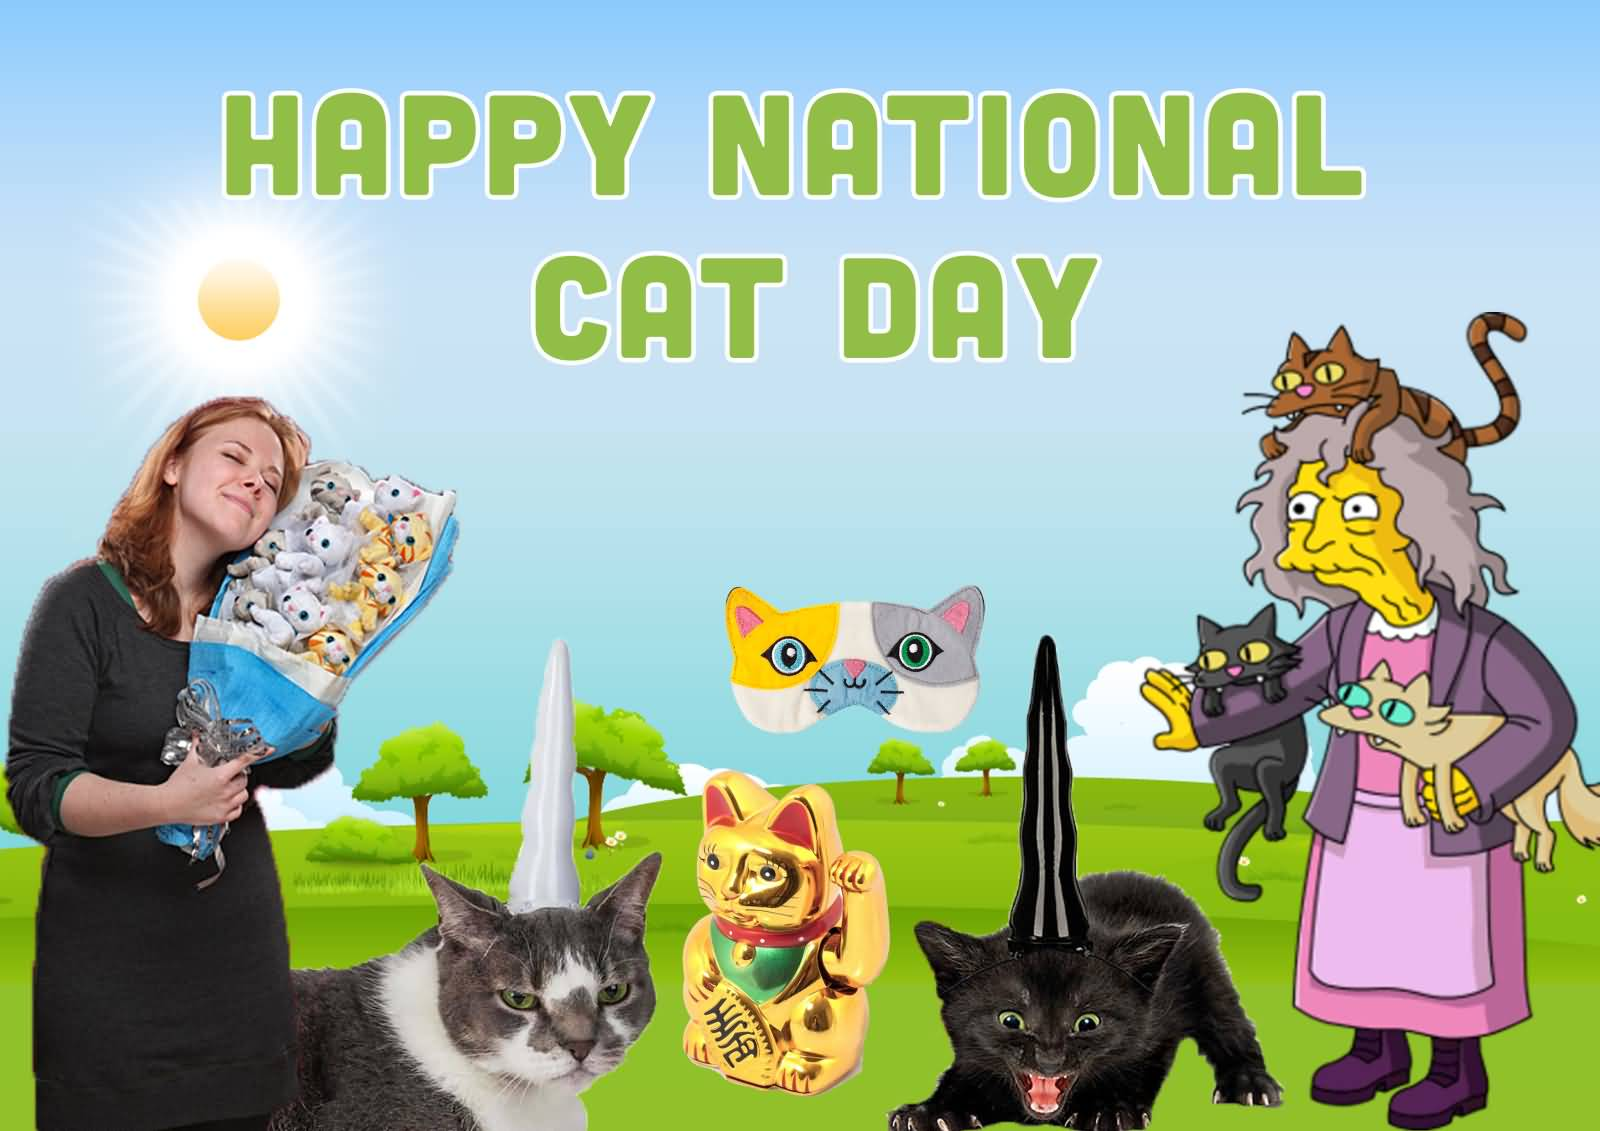 national cat day - photo #6